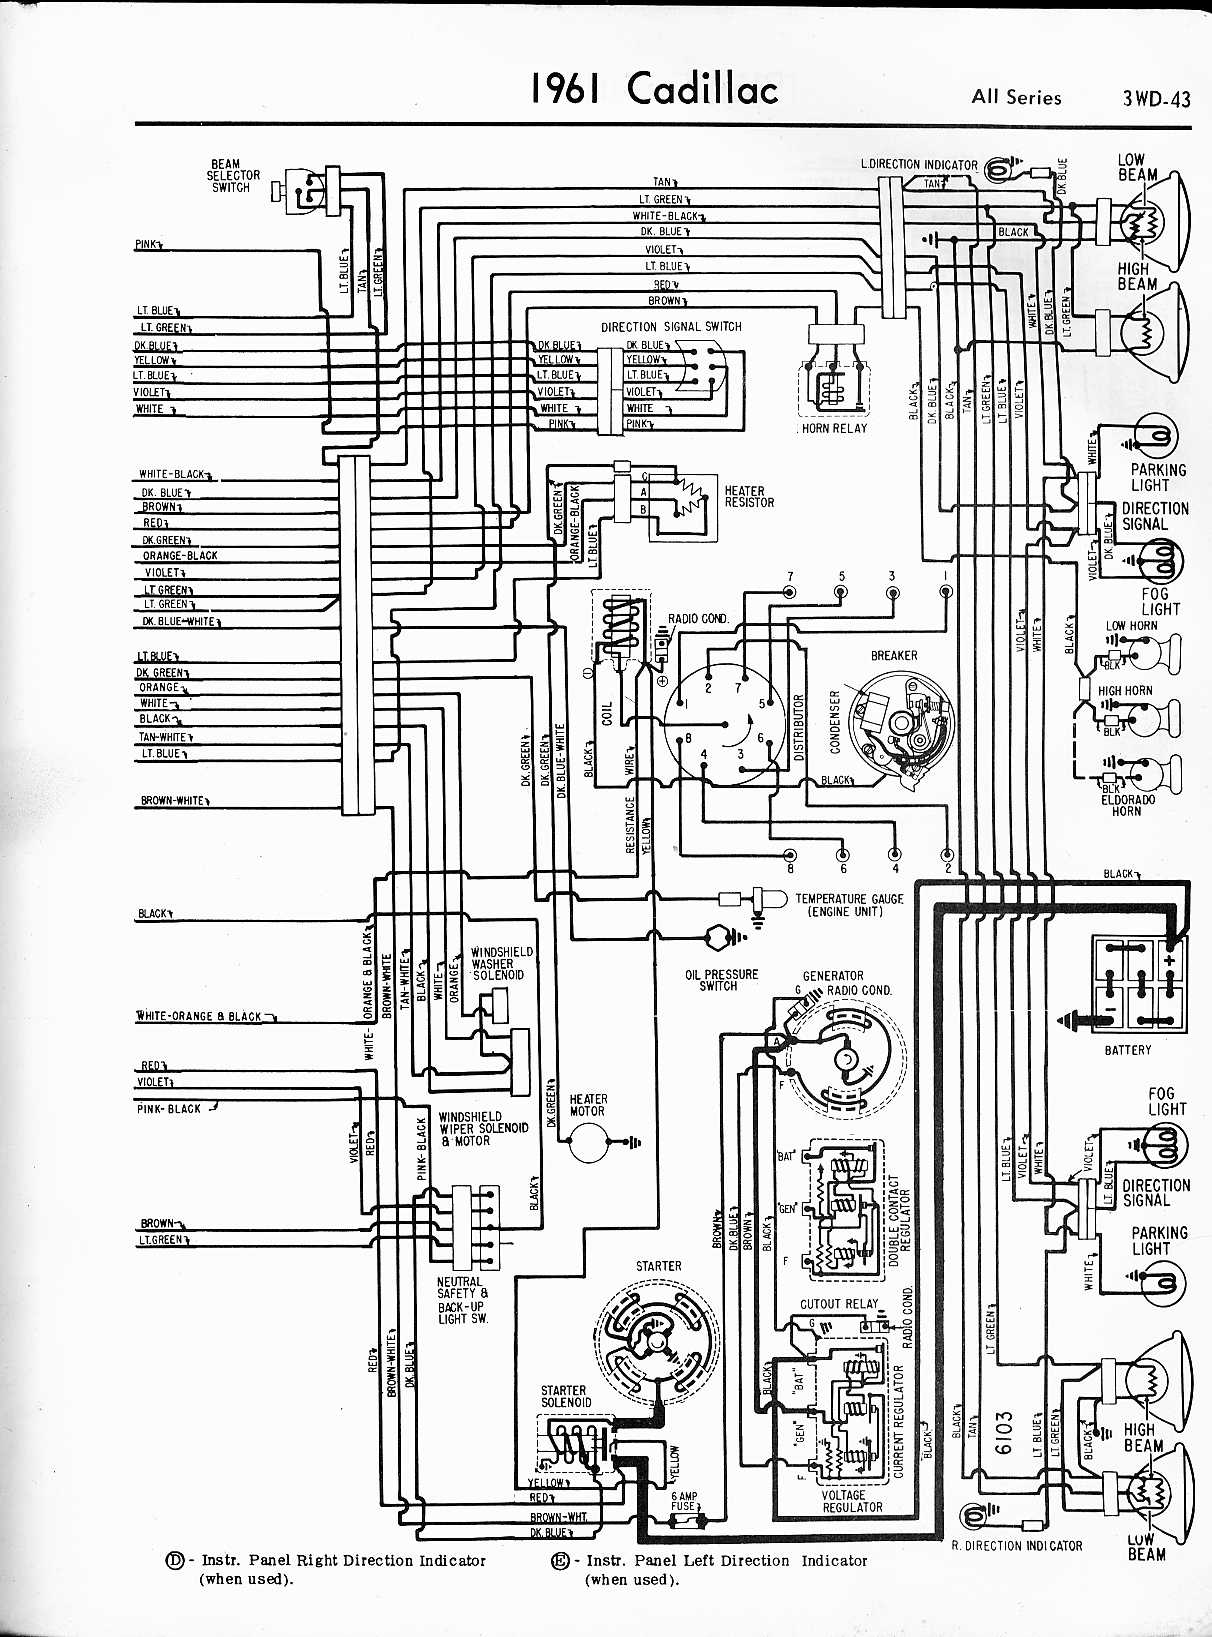 cadillac wiring diagrams 1957 1965 1950 Cadillac Wiring Diagram 1961 all series left